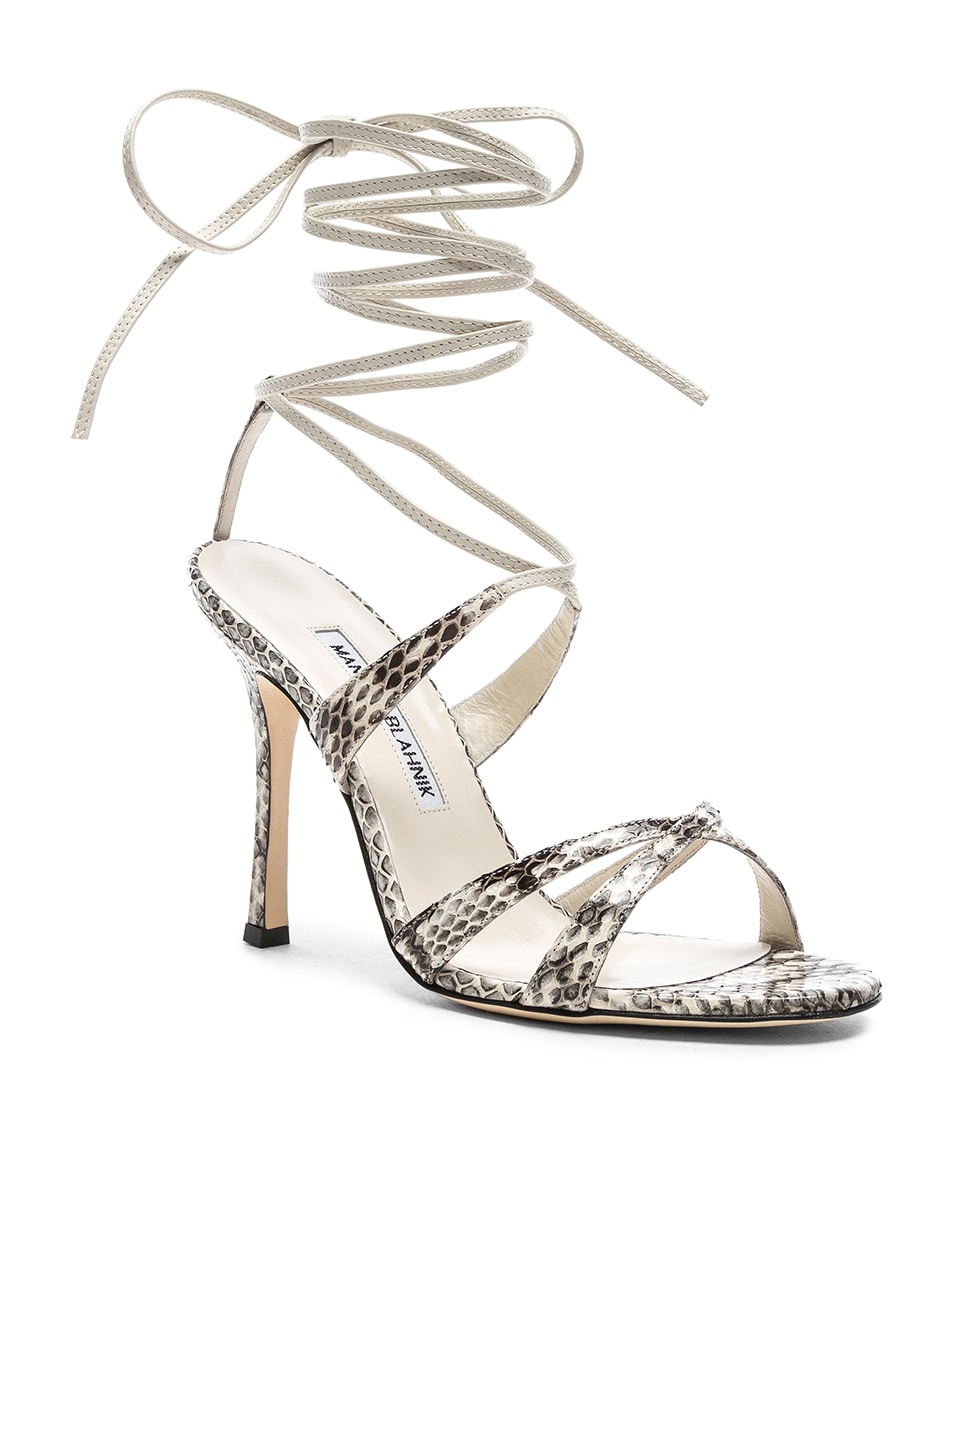 Image 2 of Manolo Blahnik Criss 105 Sandals in Black & White Natural Watersnake